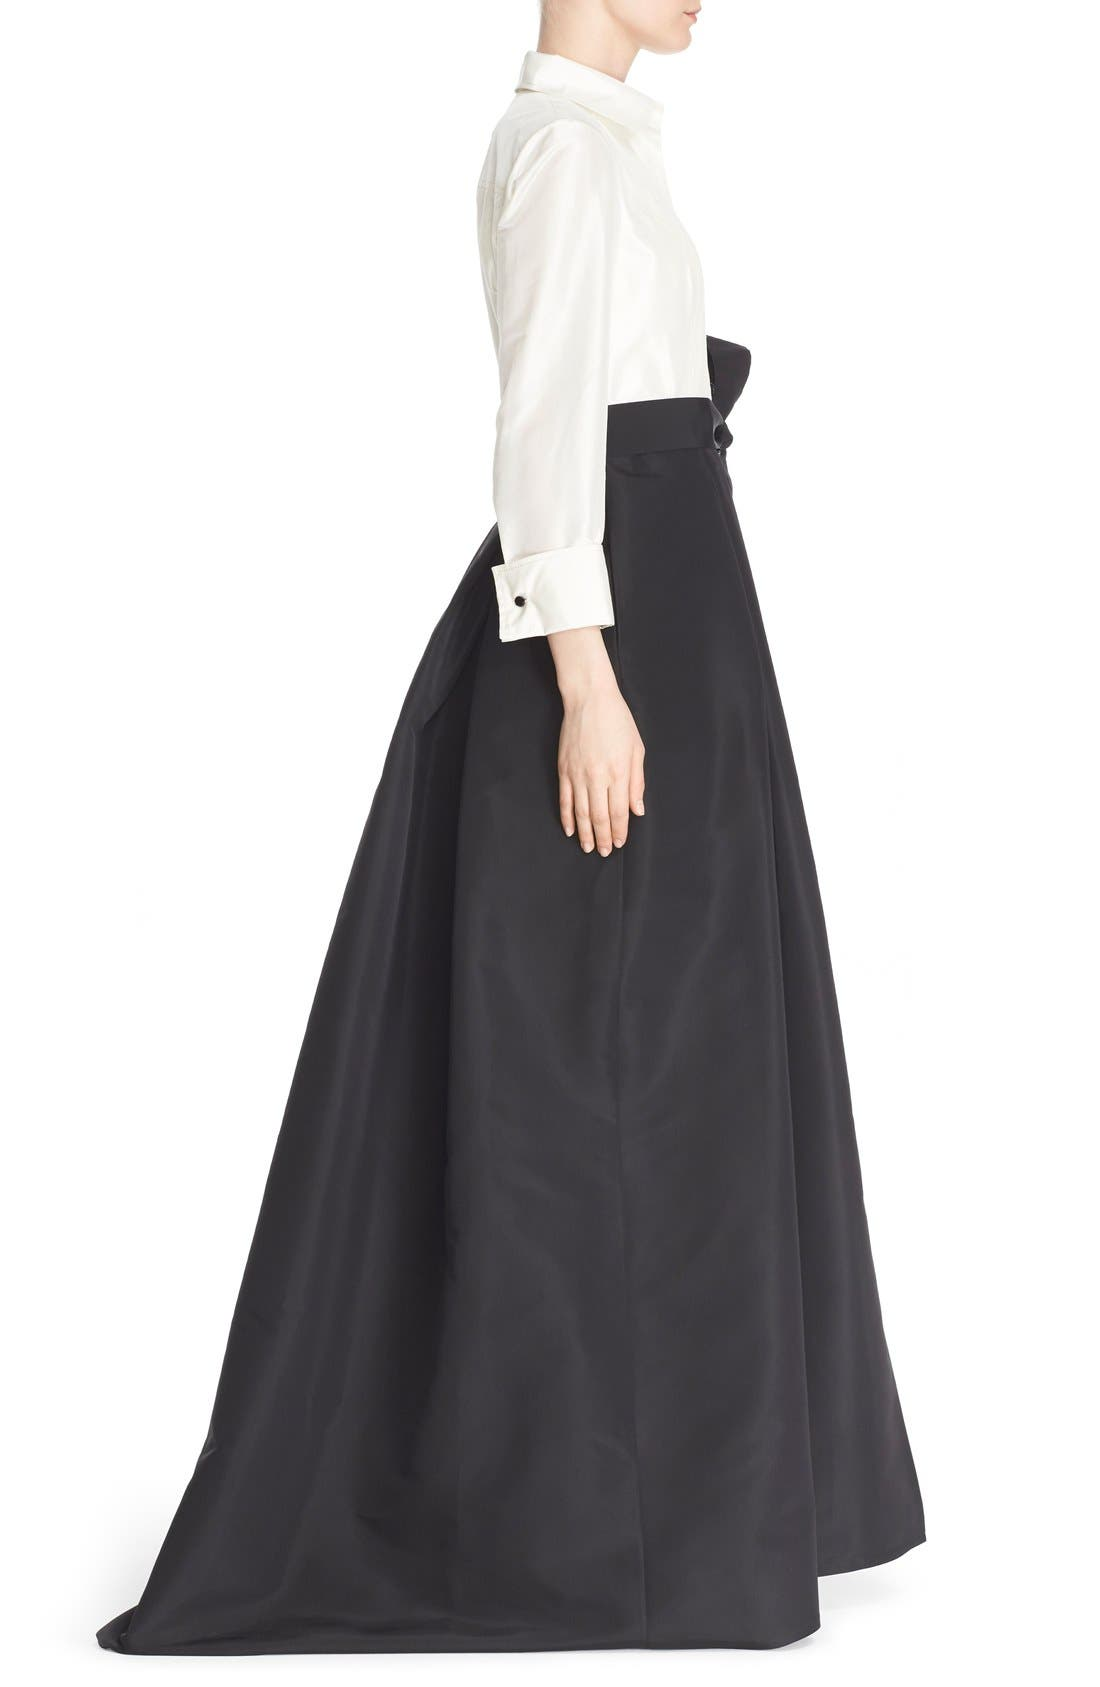 Silk Taffeta Trench Gown,                             Alternate thumbnail 4, color,                             Black/ Ivory